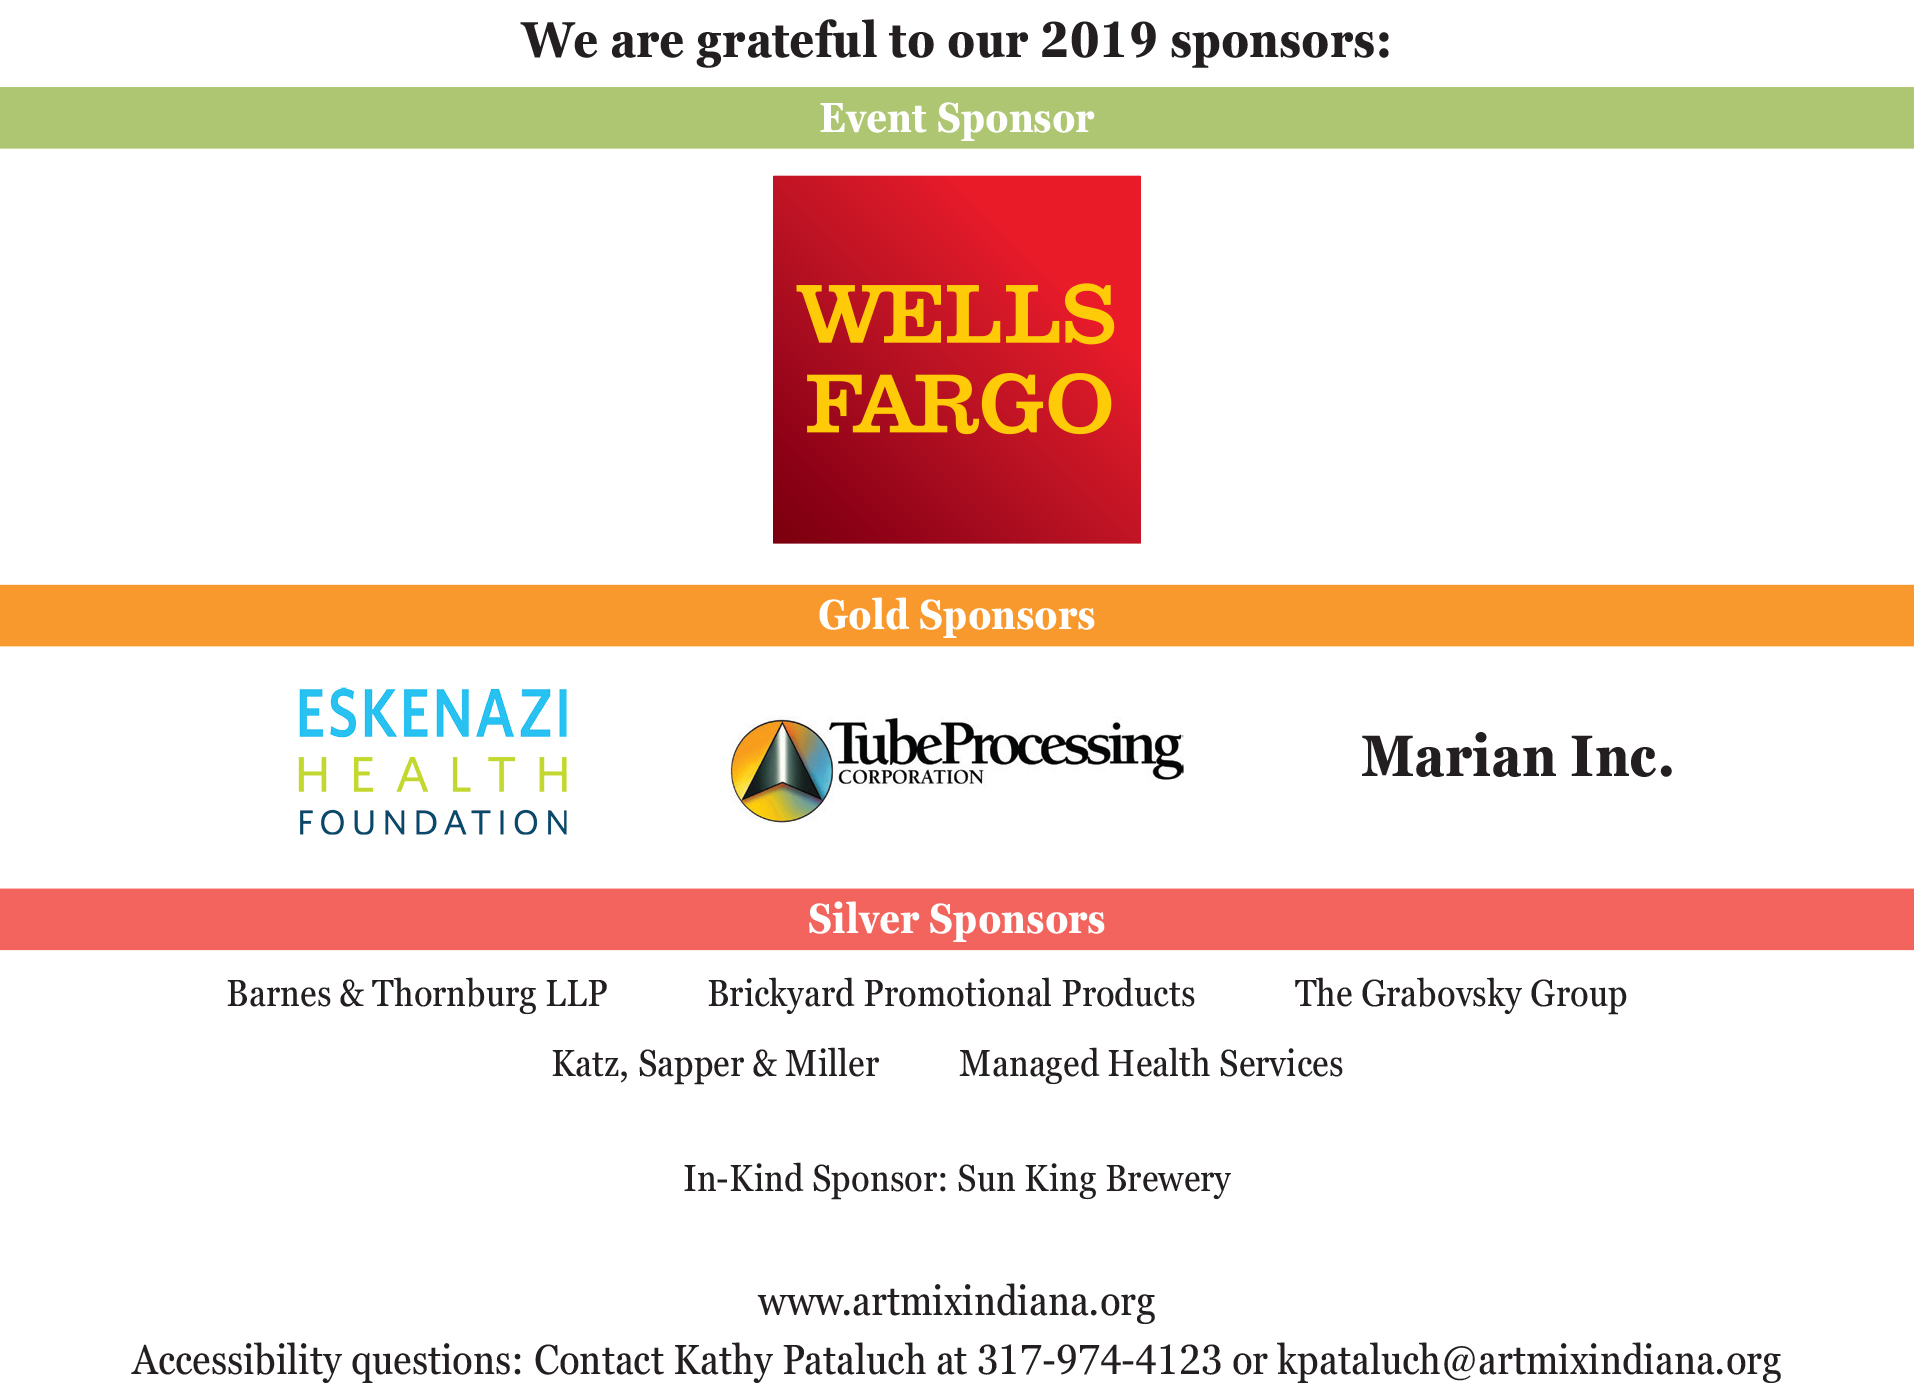 We are grateful to our 2019 sponsors: Event sponsor: Wells Fargo. Gold Sponsors: Eskenazi Health Foundation, Tube Processing Corporation, and Matain Inc. Silver Sponsors: Barnes & Thornburg LLP, Brickyard Promotional Products, The Grabovsky Group, Katz, S